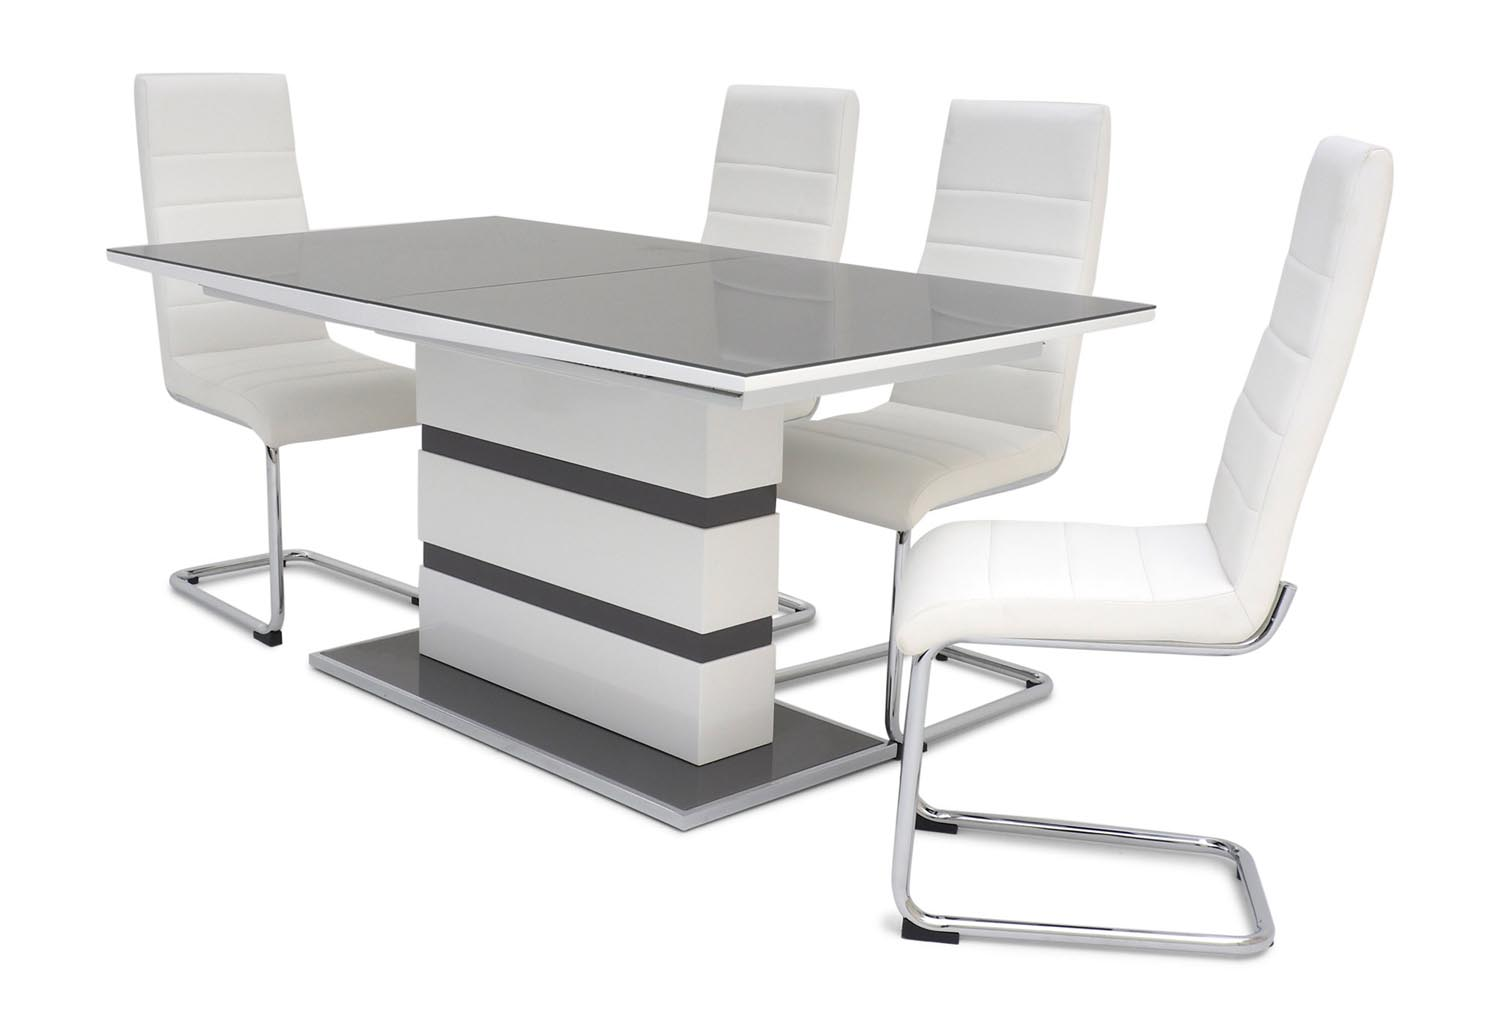 https://www.firstfurniture.co.uk/pub/media/catalog/product/a/r/armano_table_hugo_chair_white_close_1_side.jpg